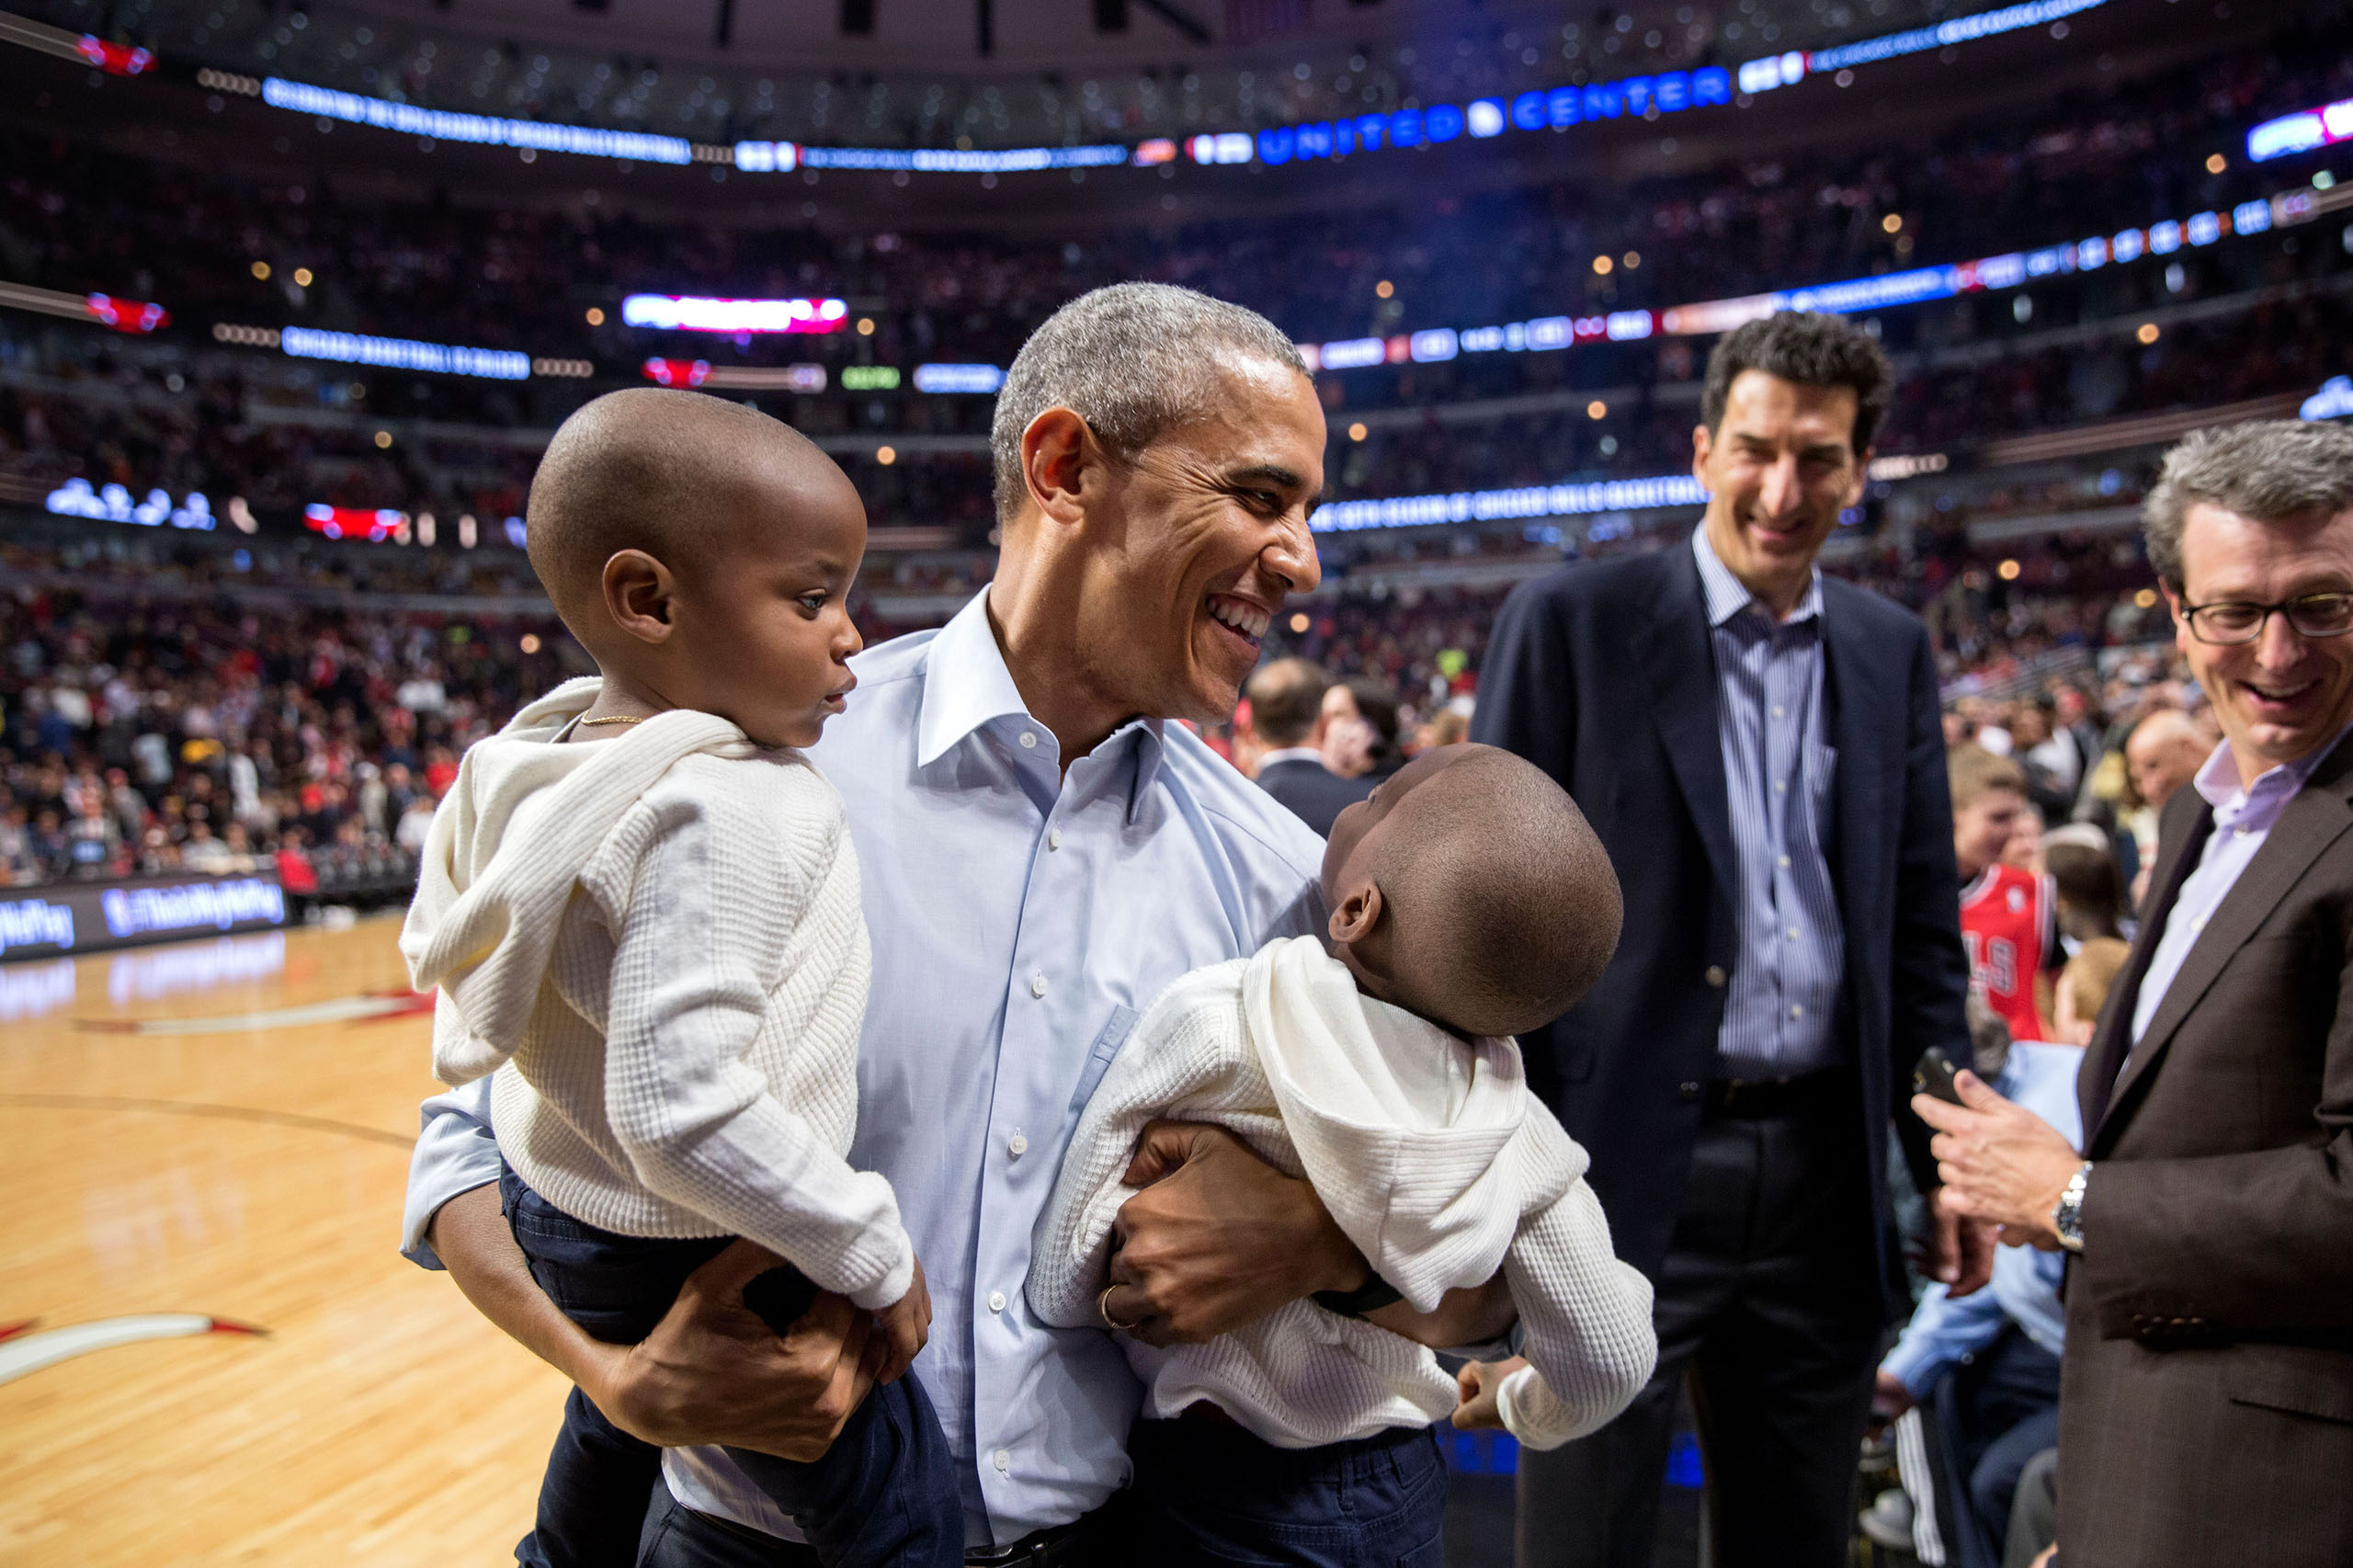 Obama holds two youngsters while posing for a photo with them during halftime of the Chicago Bulls-Cleveland Cavaliers basketball game at the United Center in Chicago, Ill., on Oct. 27, 2015.